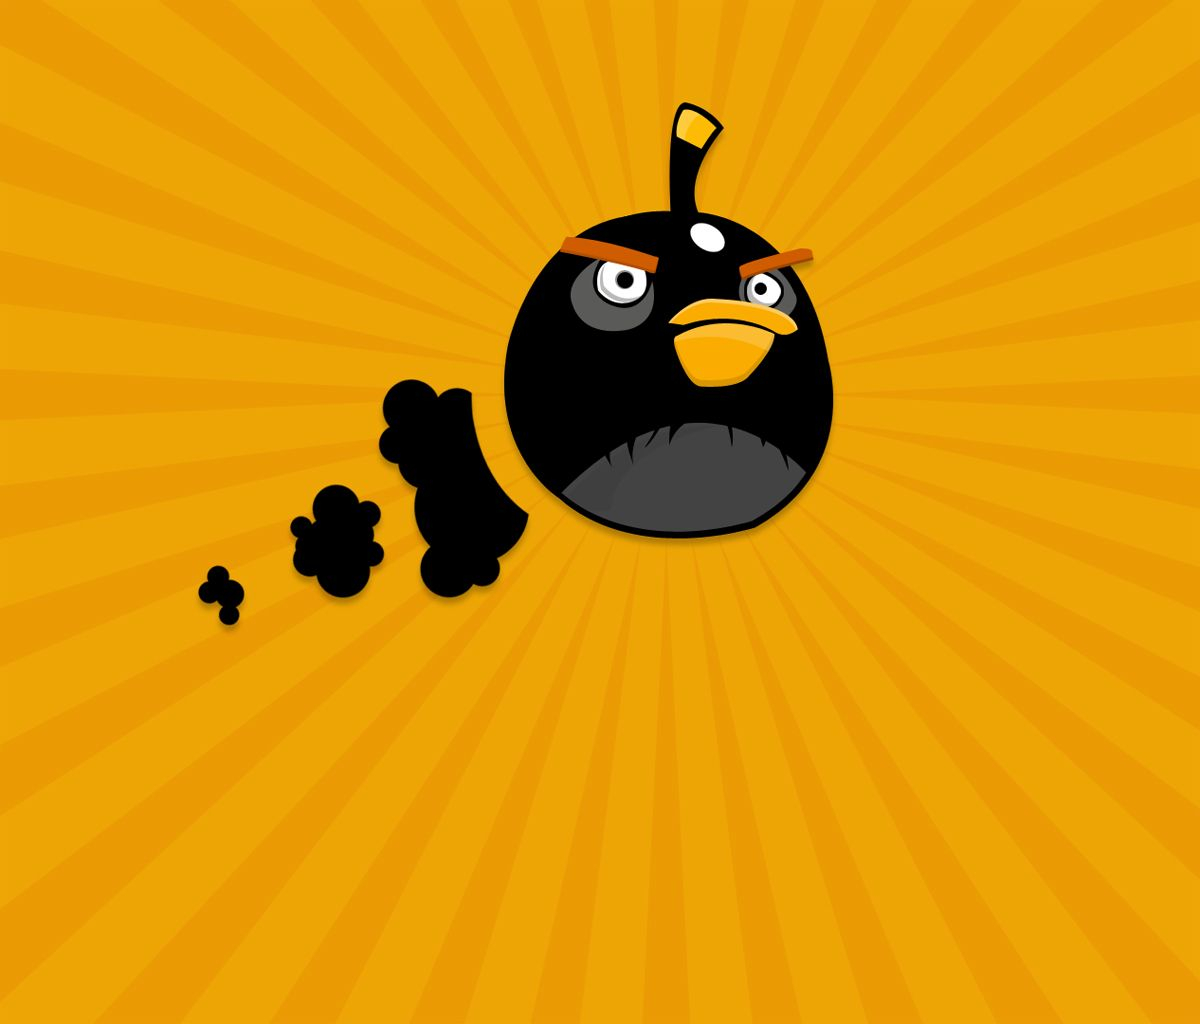 Angry Birds Black Bird Flying Images